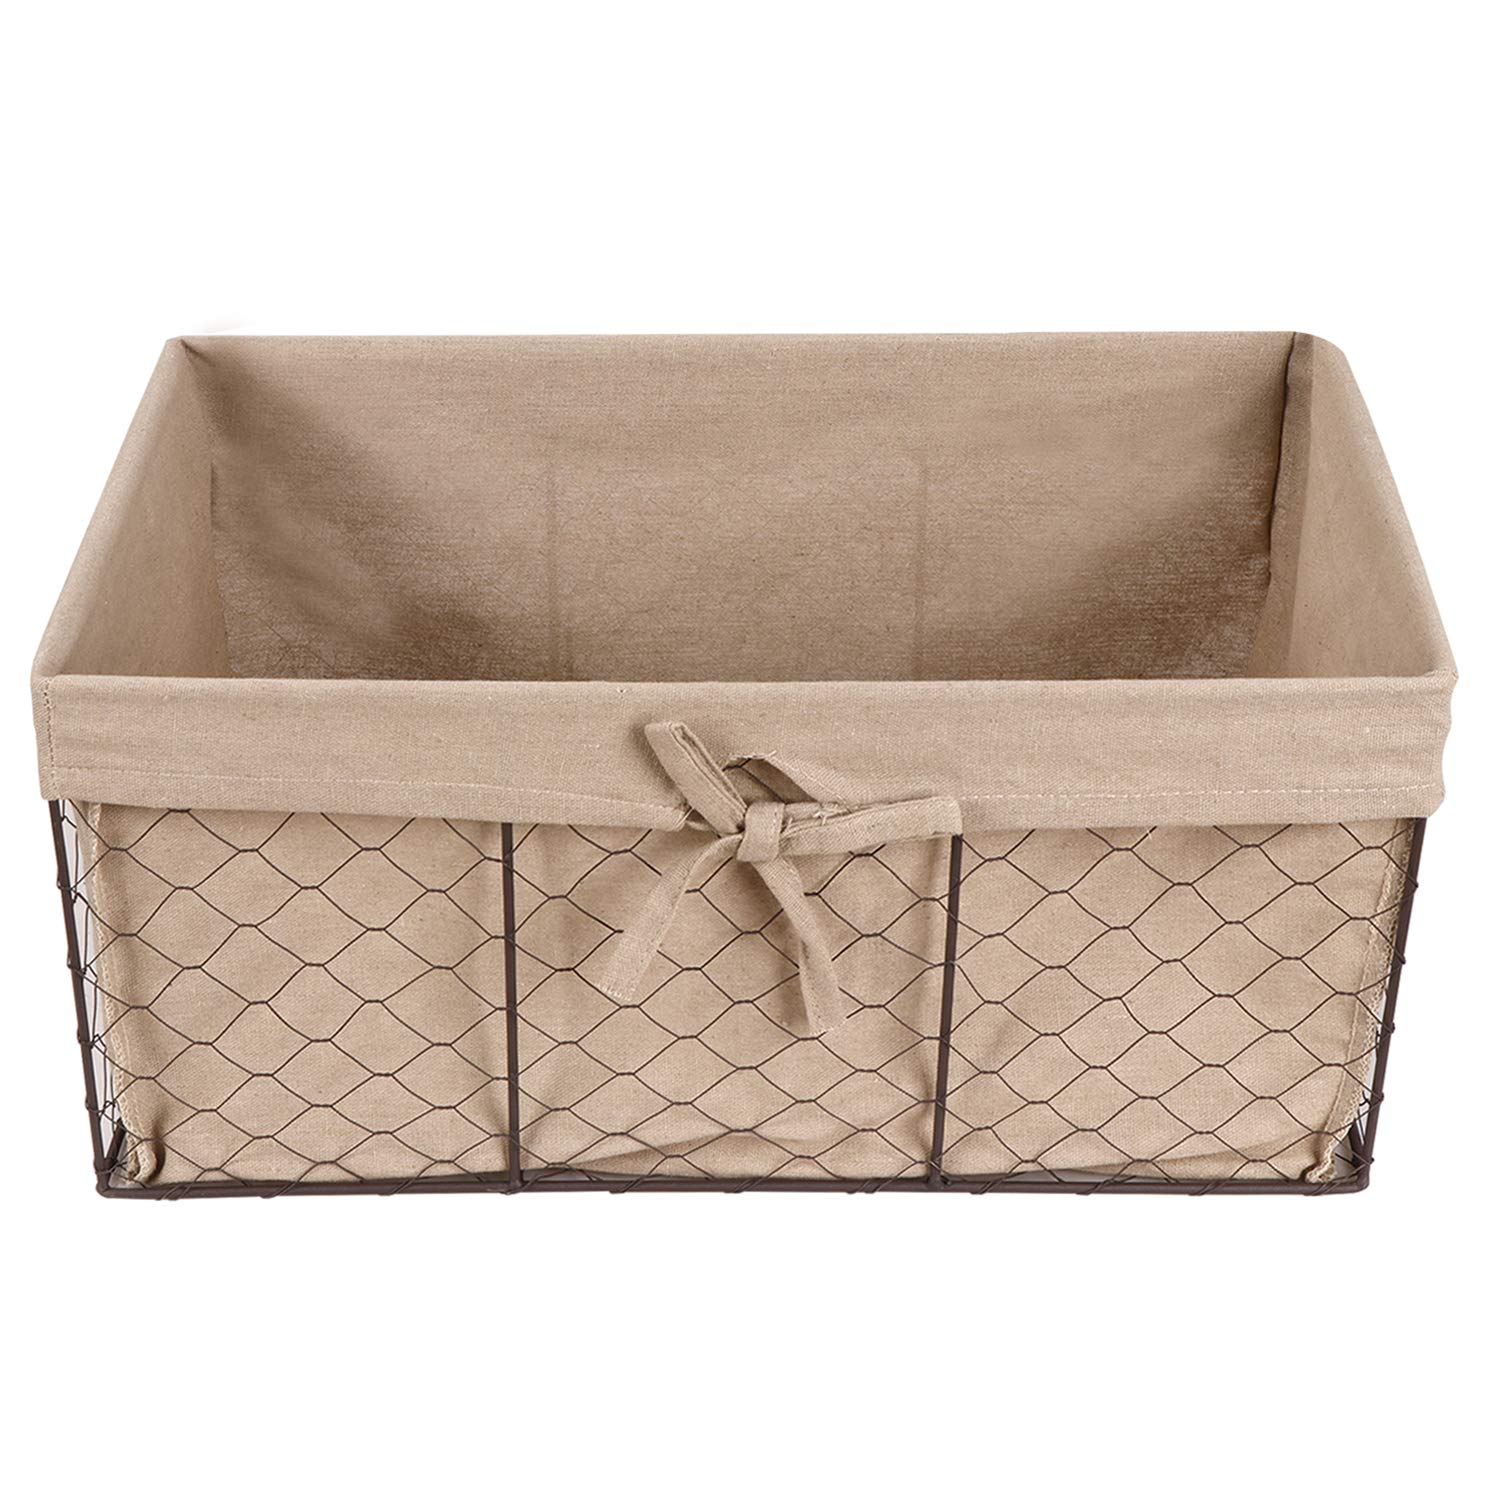 F2C Home Decor Set of 5 Vintage Toy Fruit Clothes Metal Chicken Wire Storage Basket Organizer W/Removable Fabric Liner for Bathroom Kitchen Office Nursery Laundry Bedroom Shelf by F2C (Image #3)